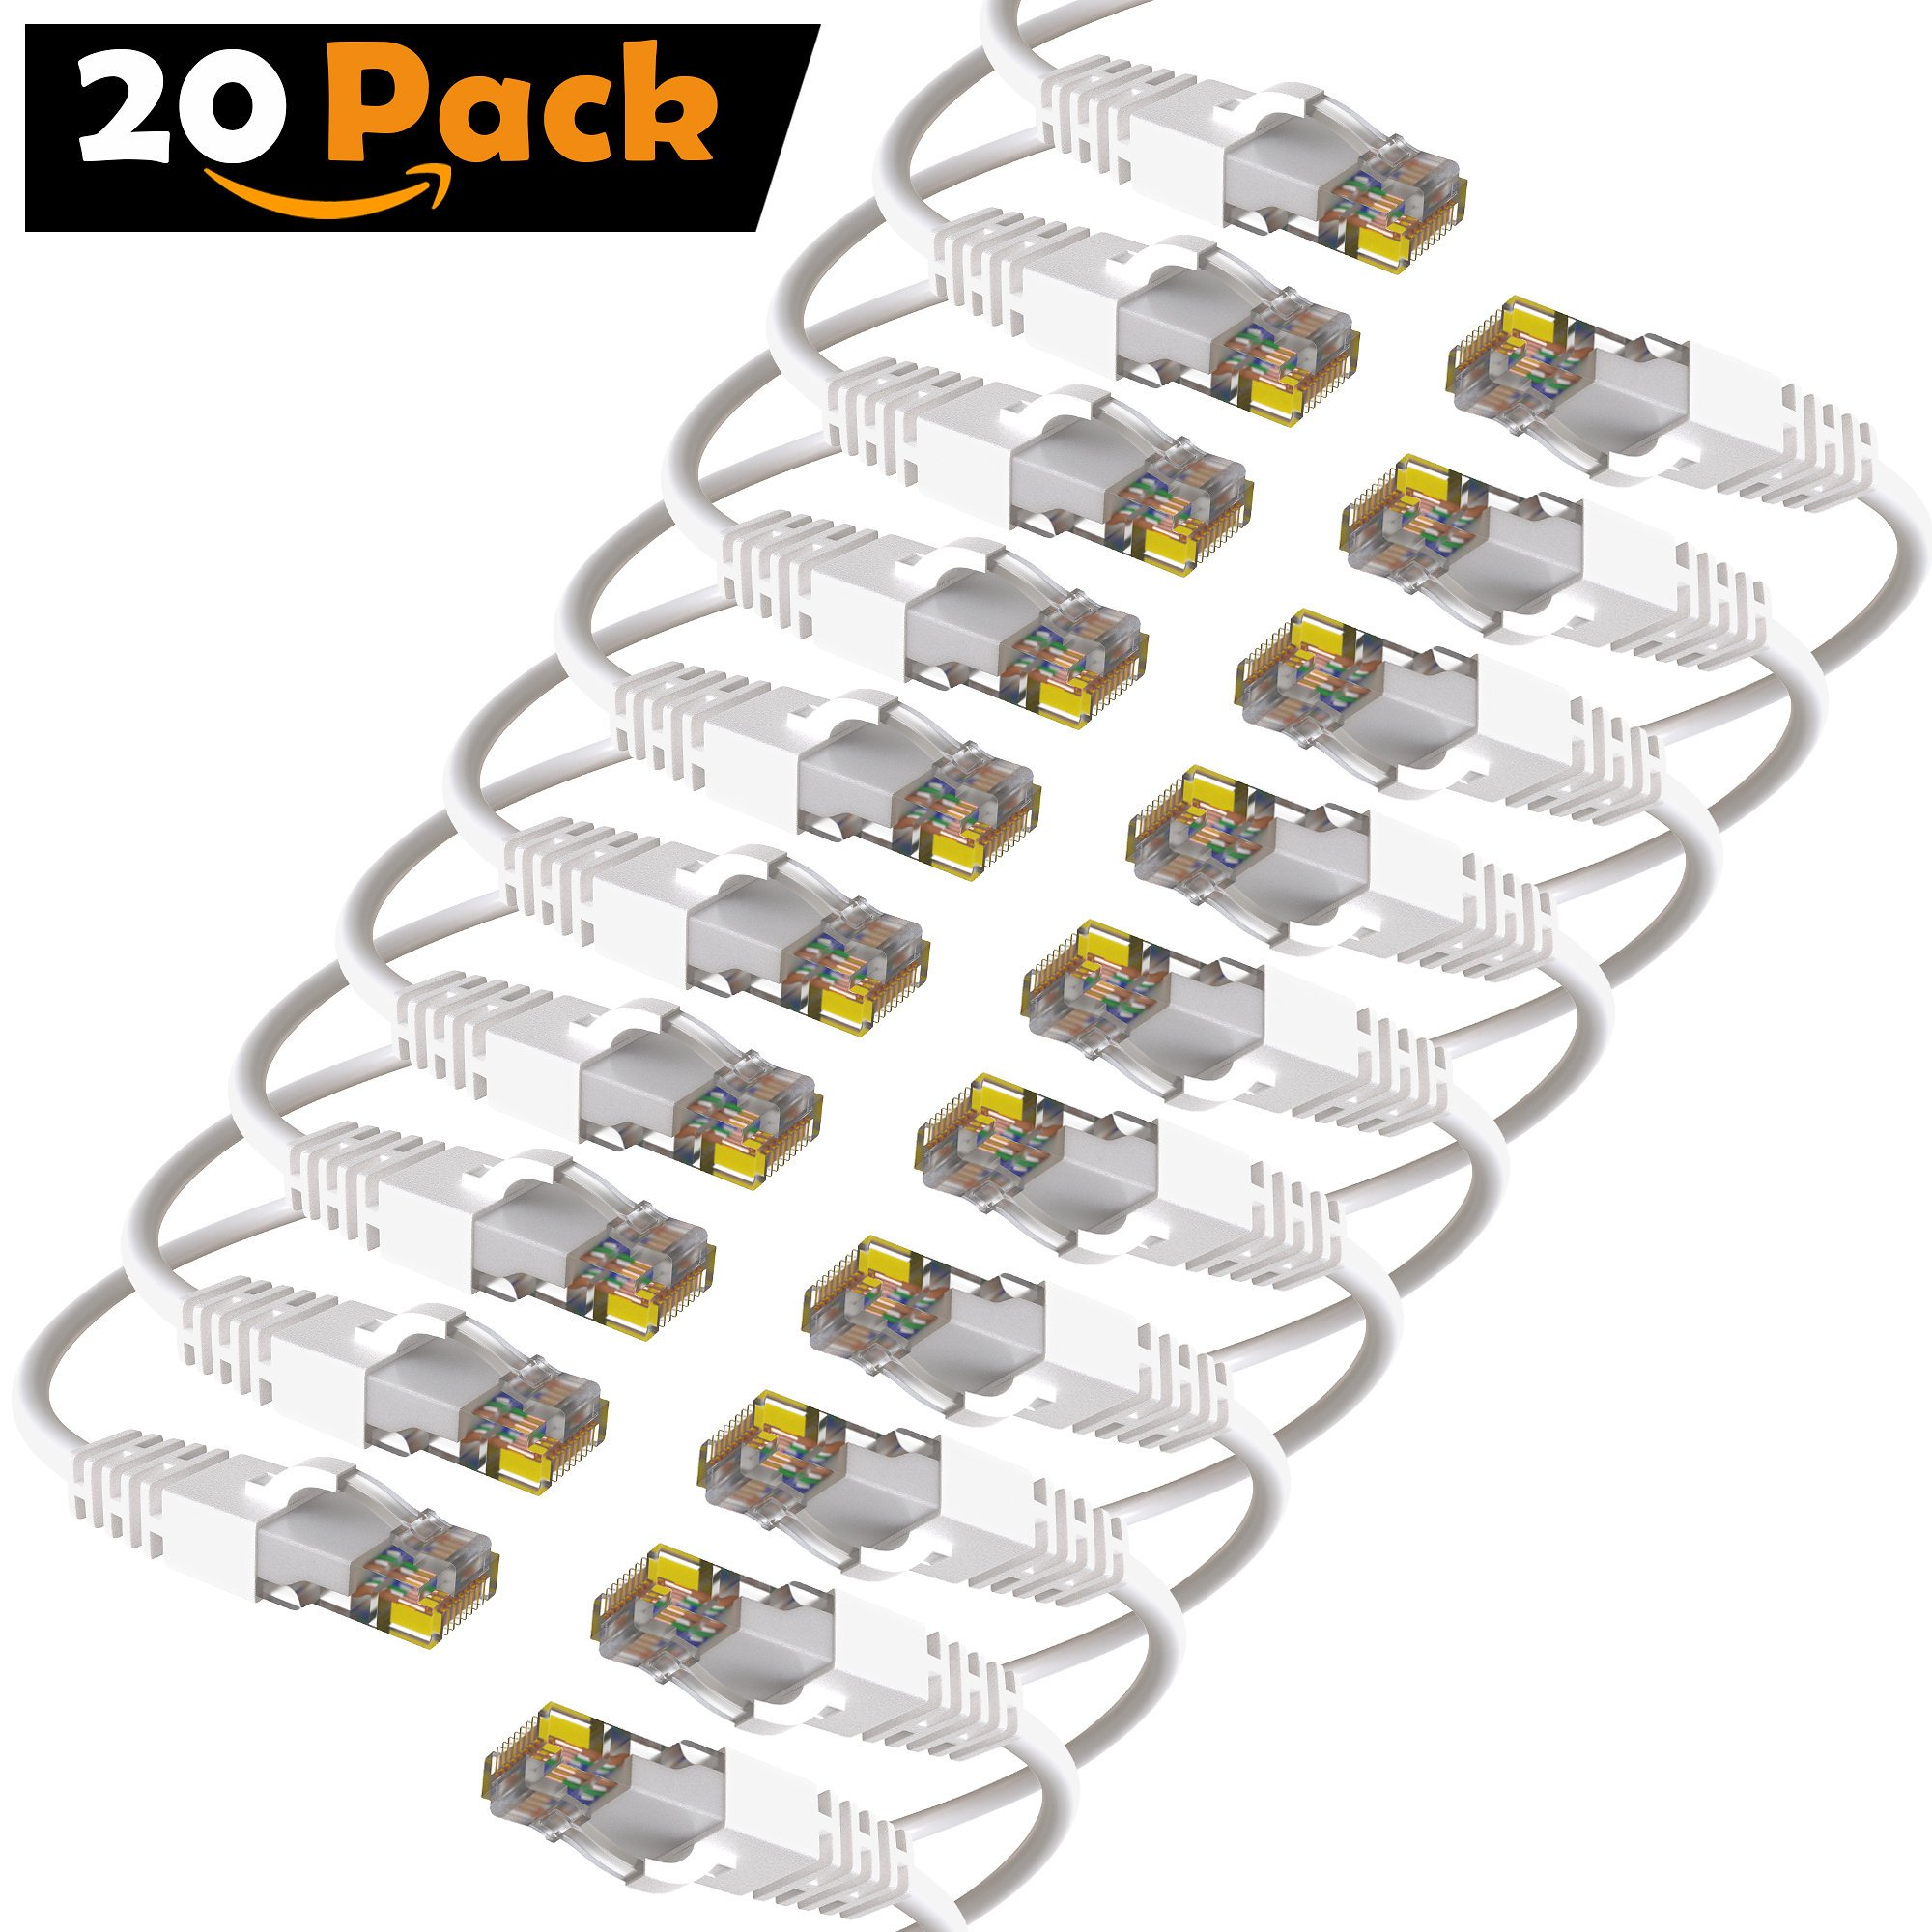 Maximm Cat6 Snagless Ethernet Cable - 25 Feet - White - [20 Pack] - Pure Copper - UL Listed - Cable Ties Included by Maximm